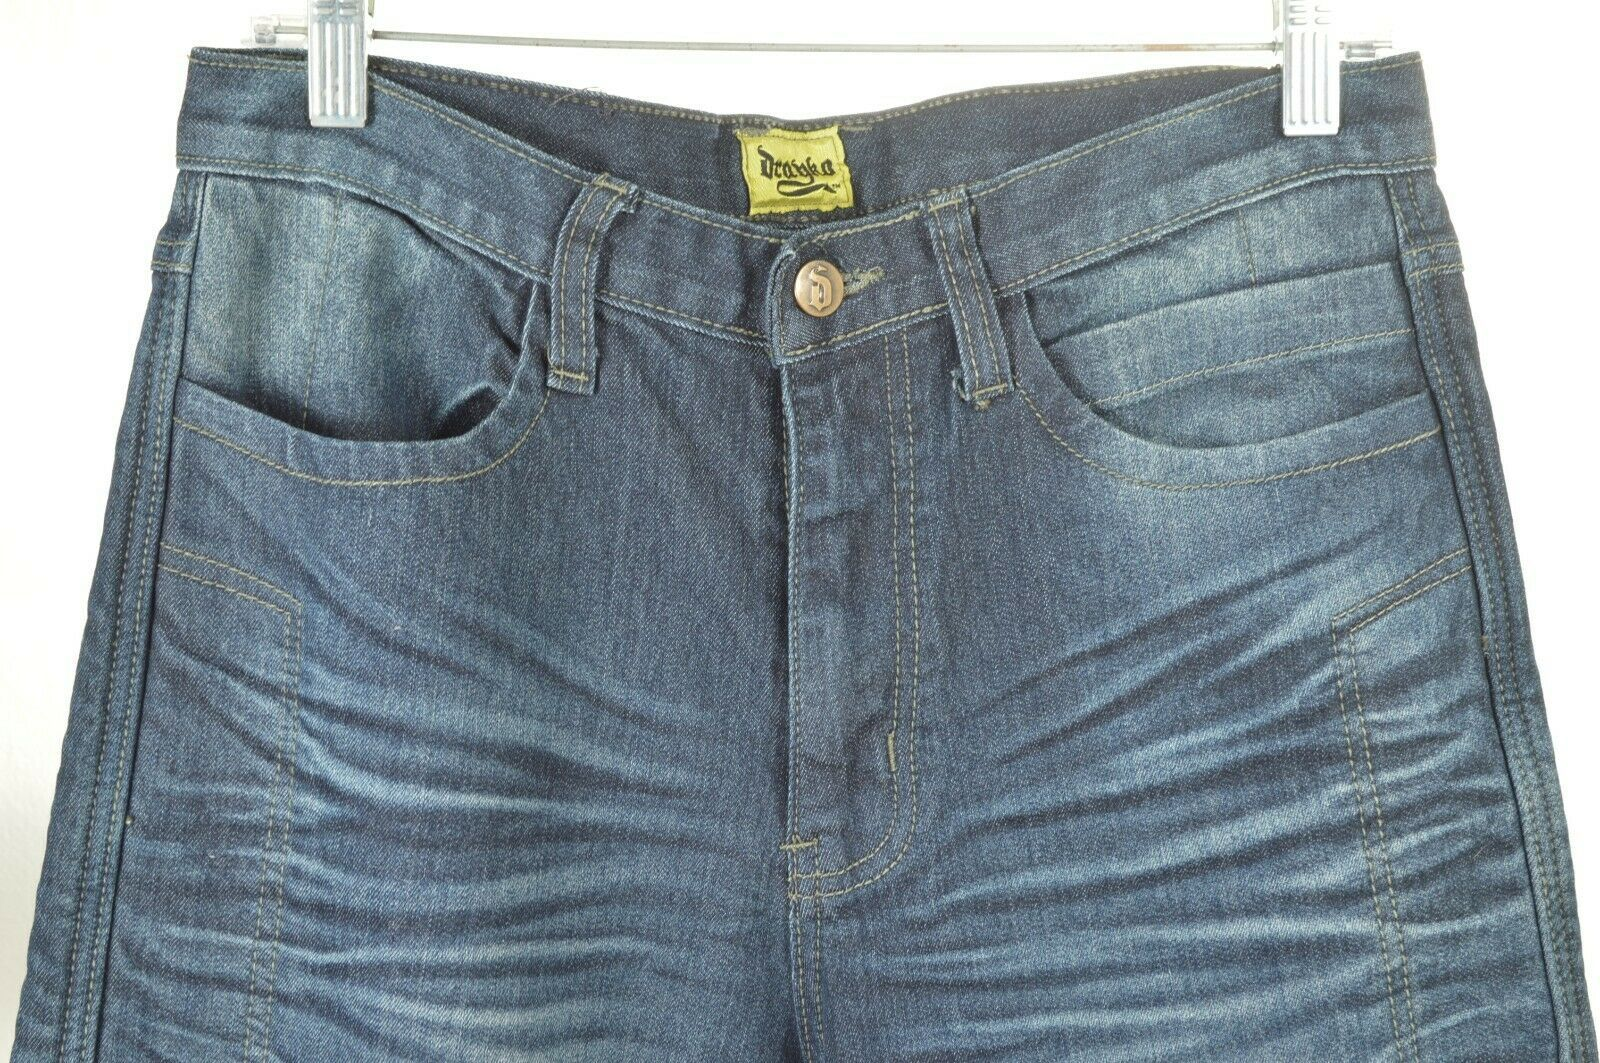 Drayko Jeans Mens 30 x 37 Motorcycle Riding extra long padded - Slightly Used image 4